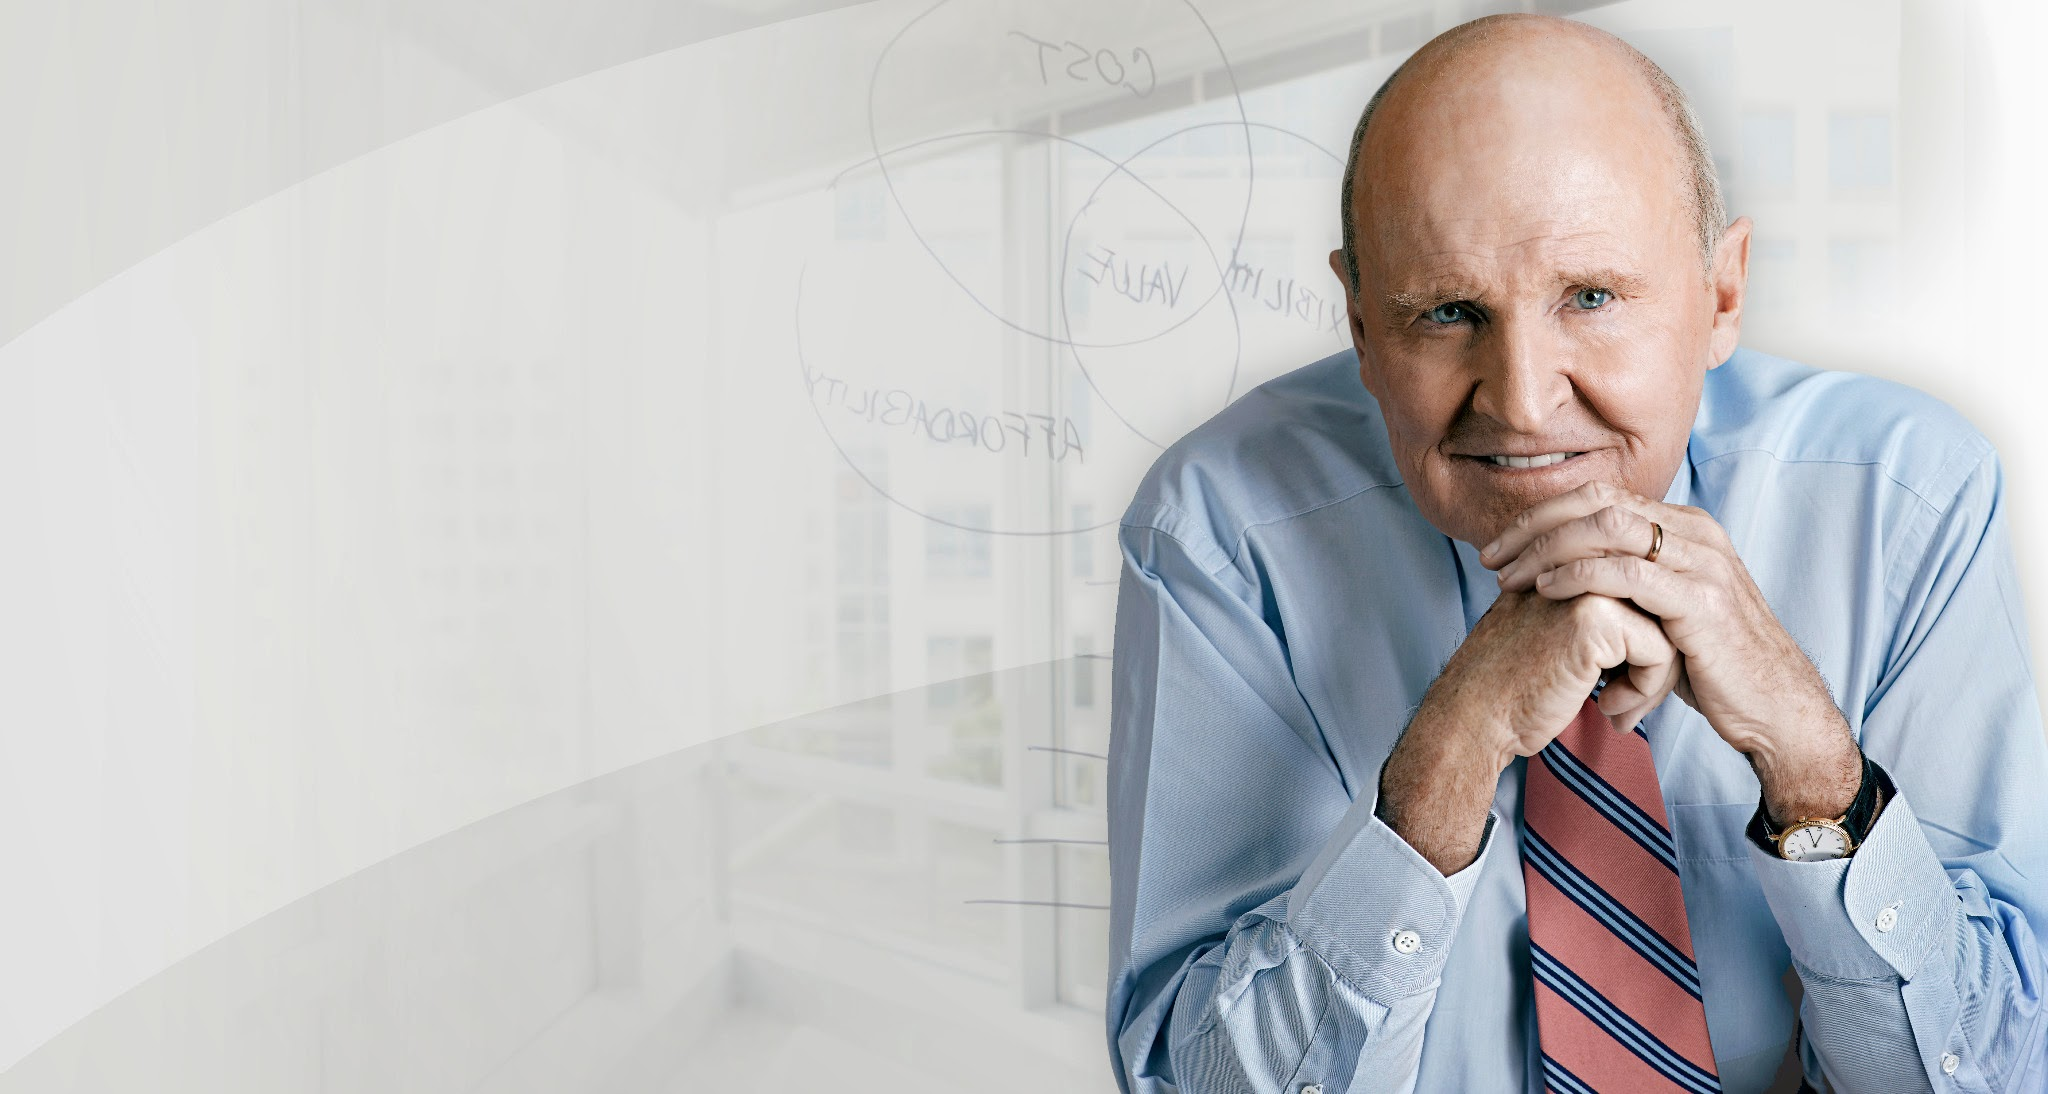 jack welch human resource leader essay The jack welch era at general electric essay in the case, the jack welch era at general electric, indicate that during the period of jack welch was a ceo at general electric from 1981 to 2001, the company became remarkable profit.